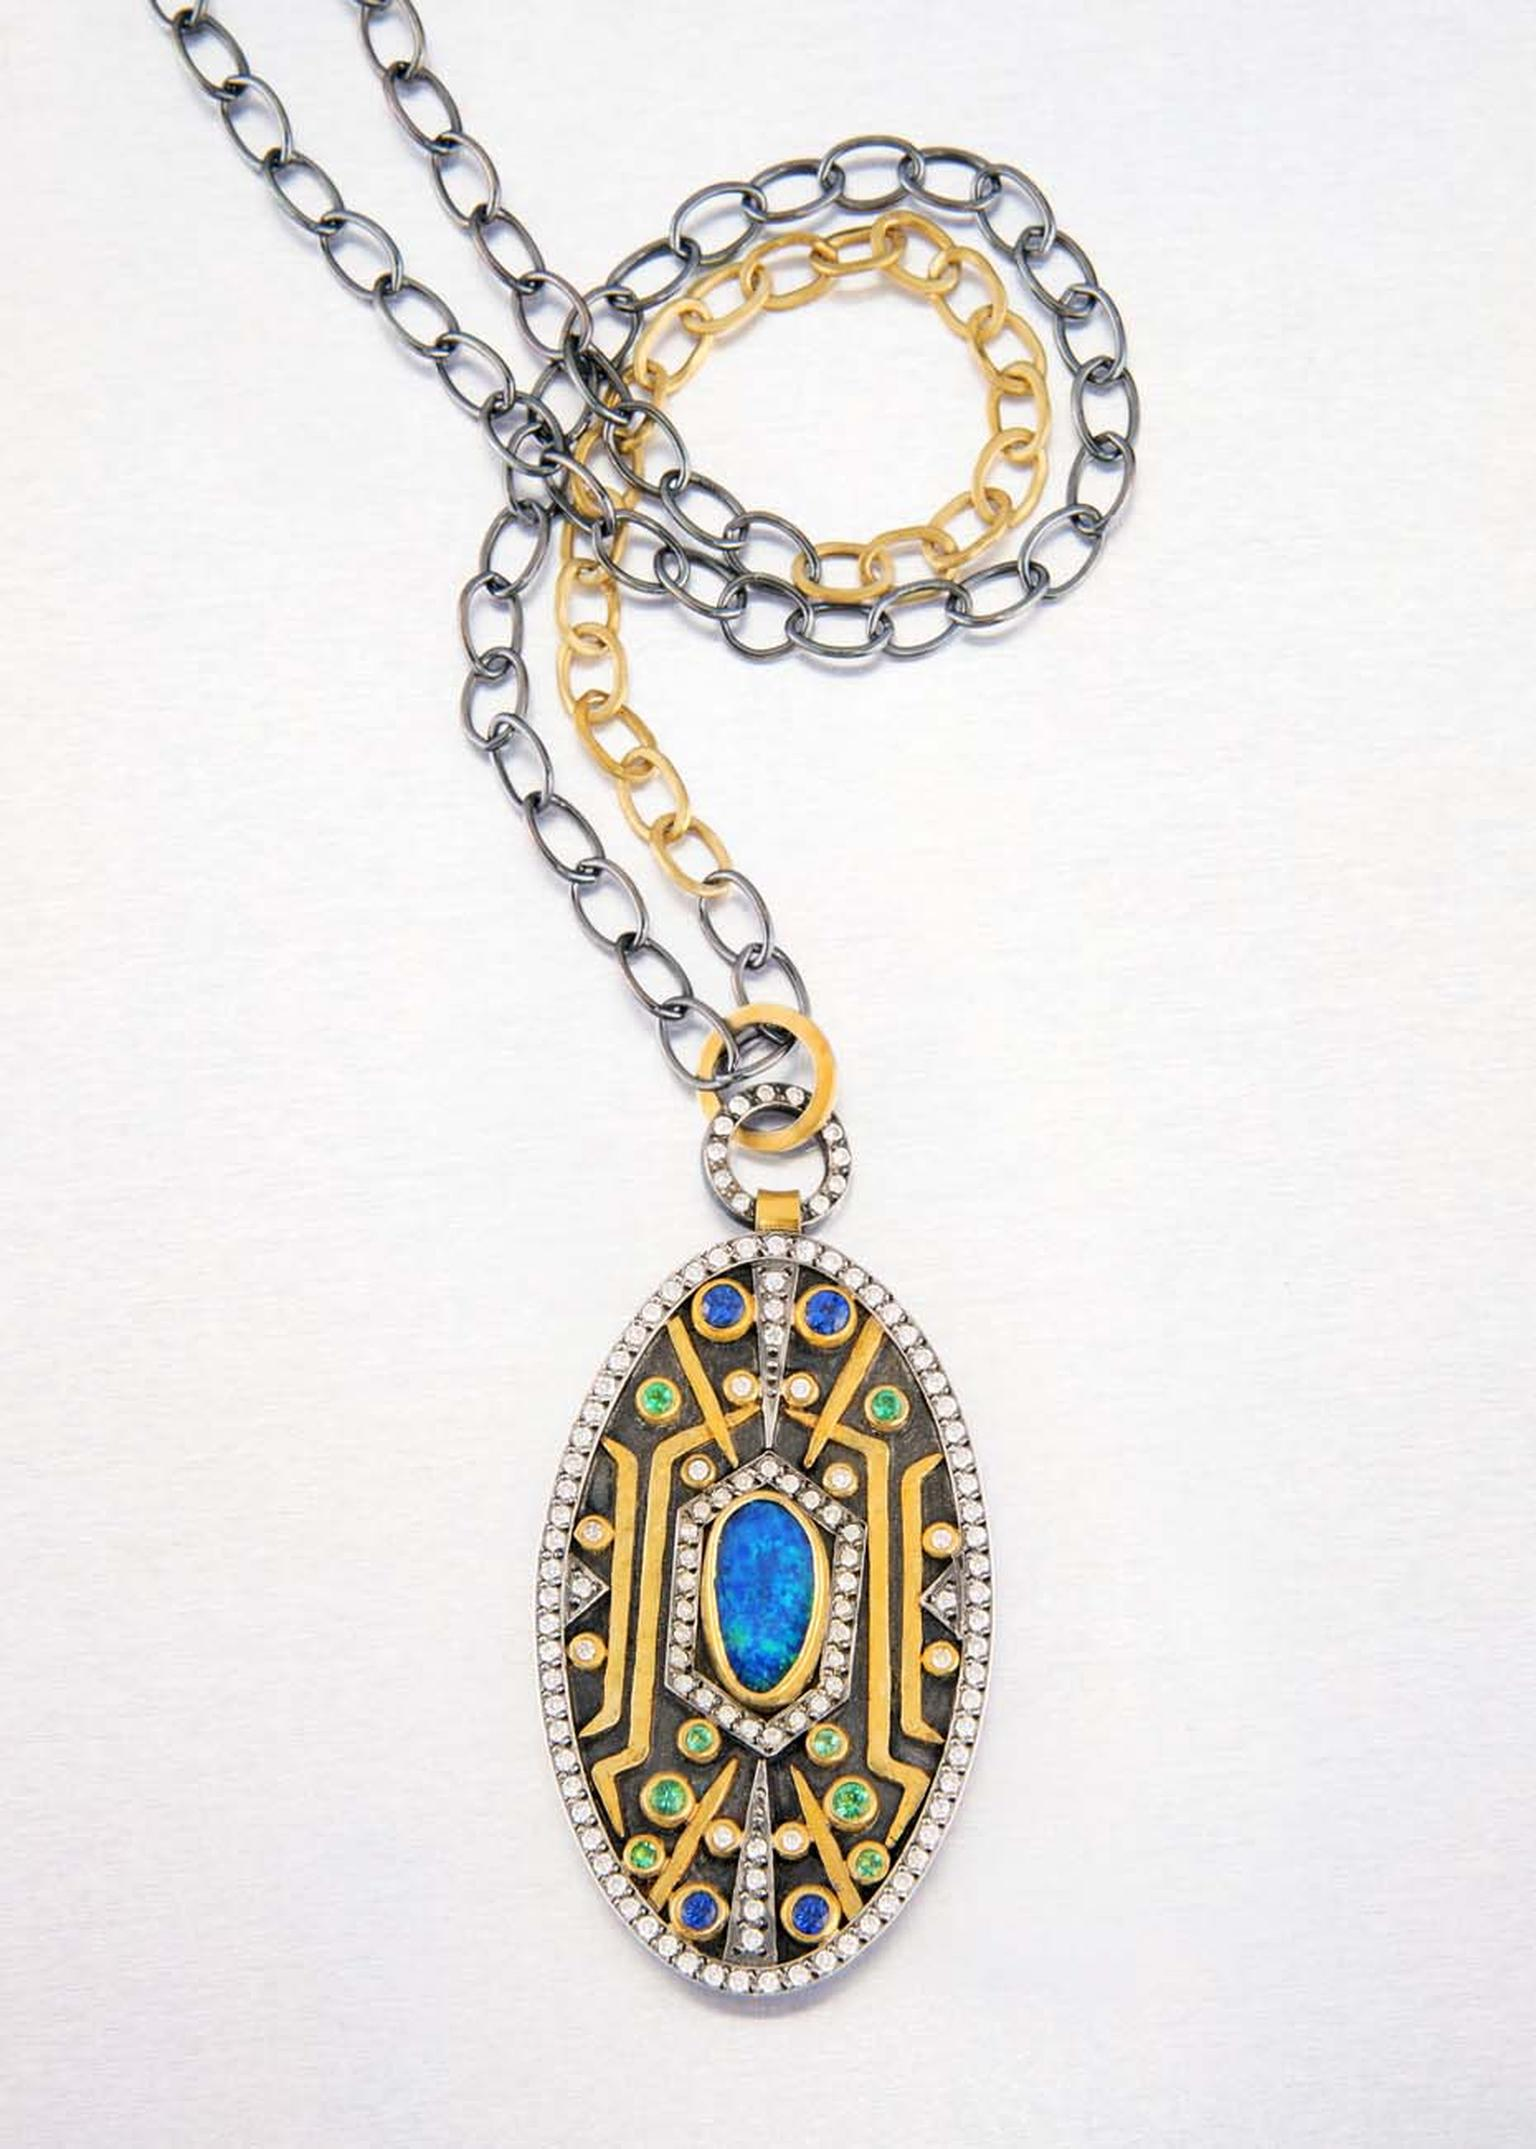 Annie Fensterstock gold and blackened silver Empire pendant featuring diamonds, sapphires, emeralds and opal.